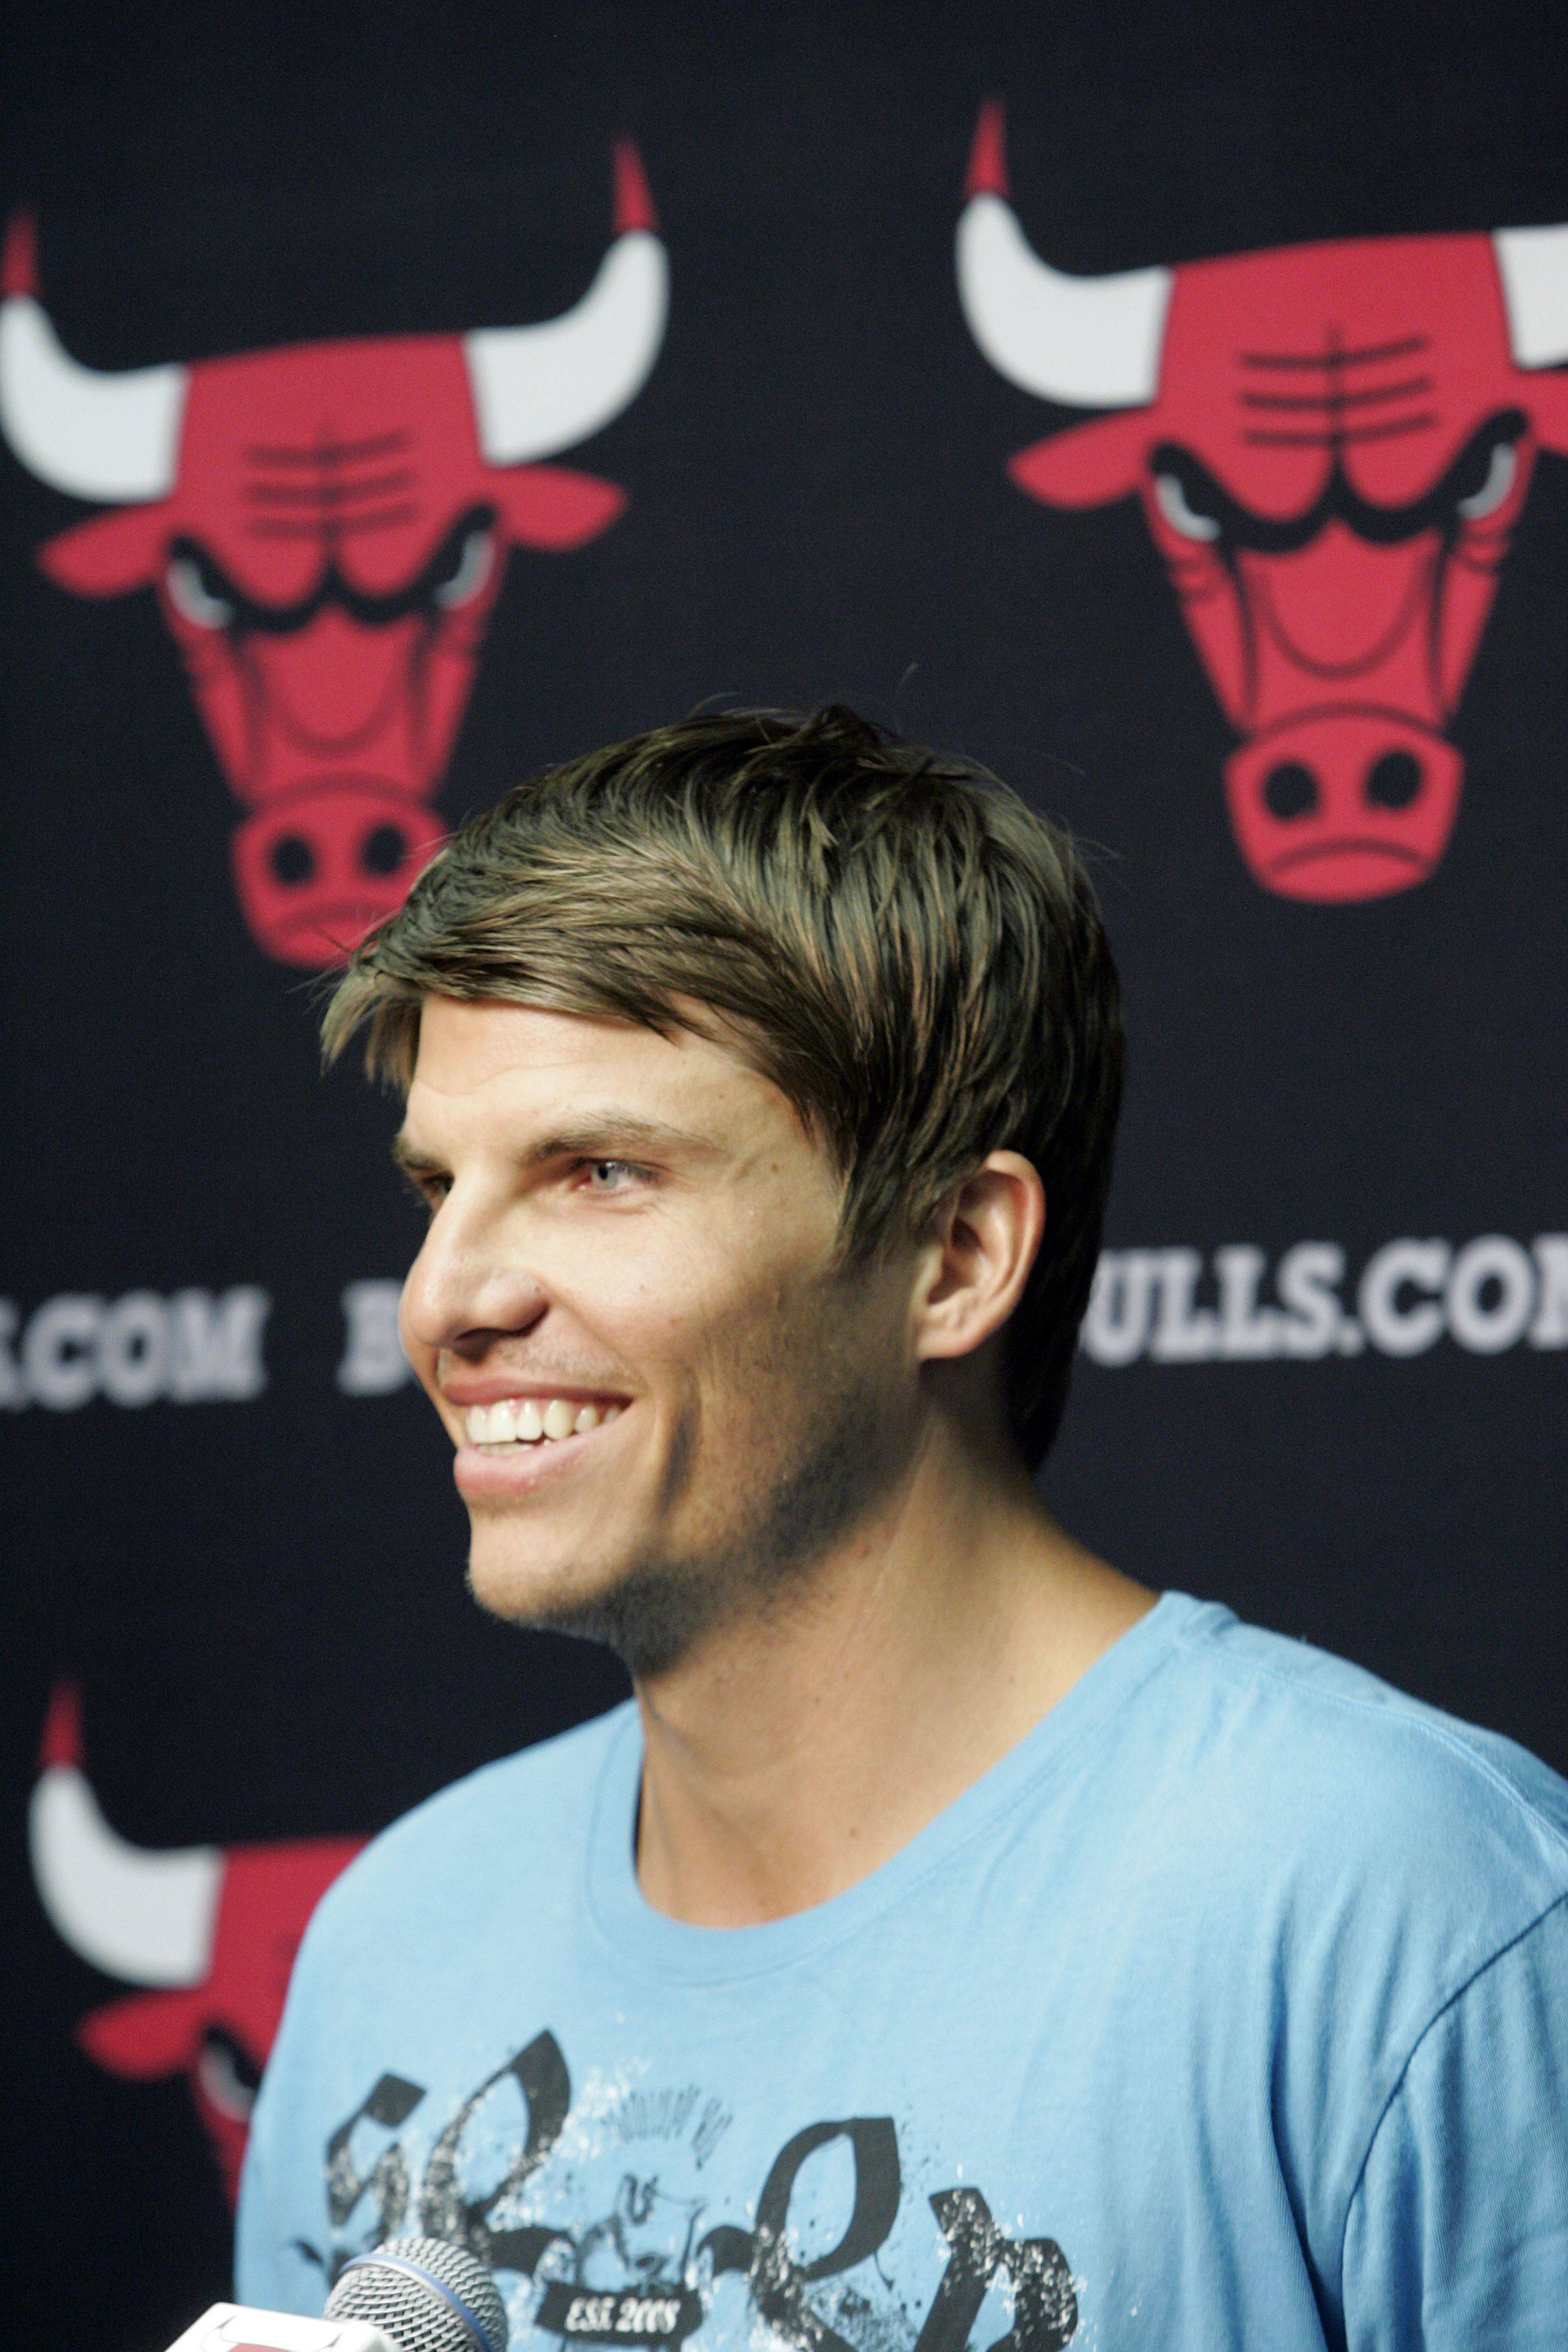 Kyle Korver is in a shooting slump, but Bulls coach Tom Thibodeau has faith that he will start hitting his shots.